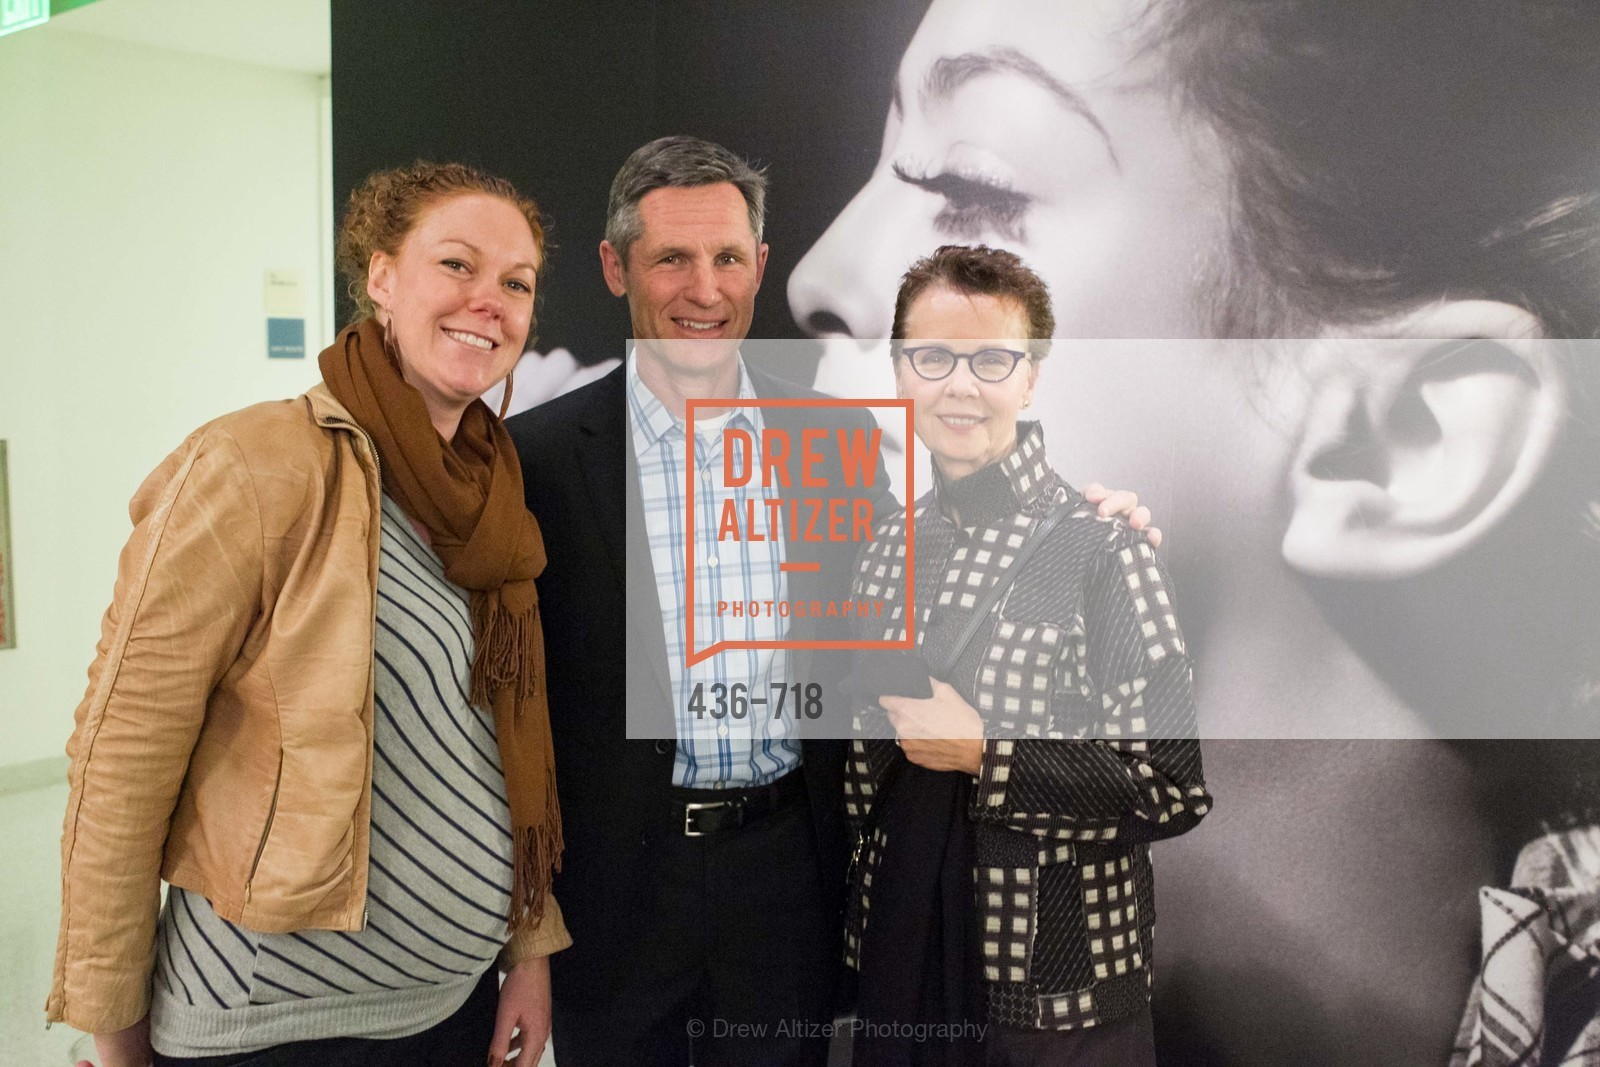 Shae Wilder. Kevin Laughlin, Kathleen Taylor, ICAA Hosts NICKY HASLAM'S Lecture and Book Signing, US, May 12th, 2015,Drew Altizer, Drew Altizer Photography, full-service agency, private events, San Francisco photographer, photographer california